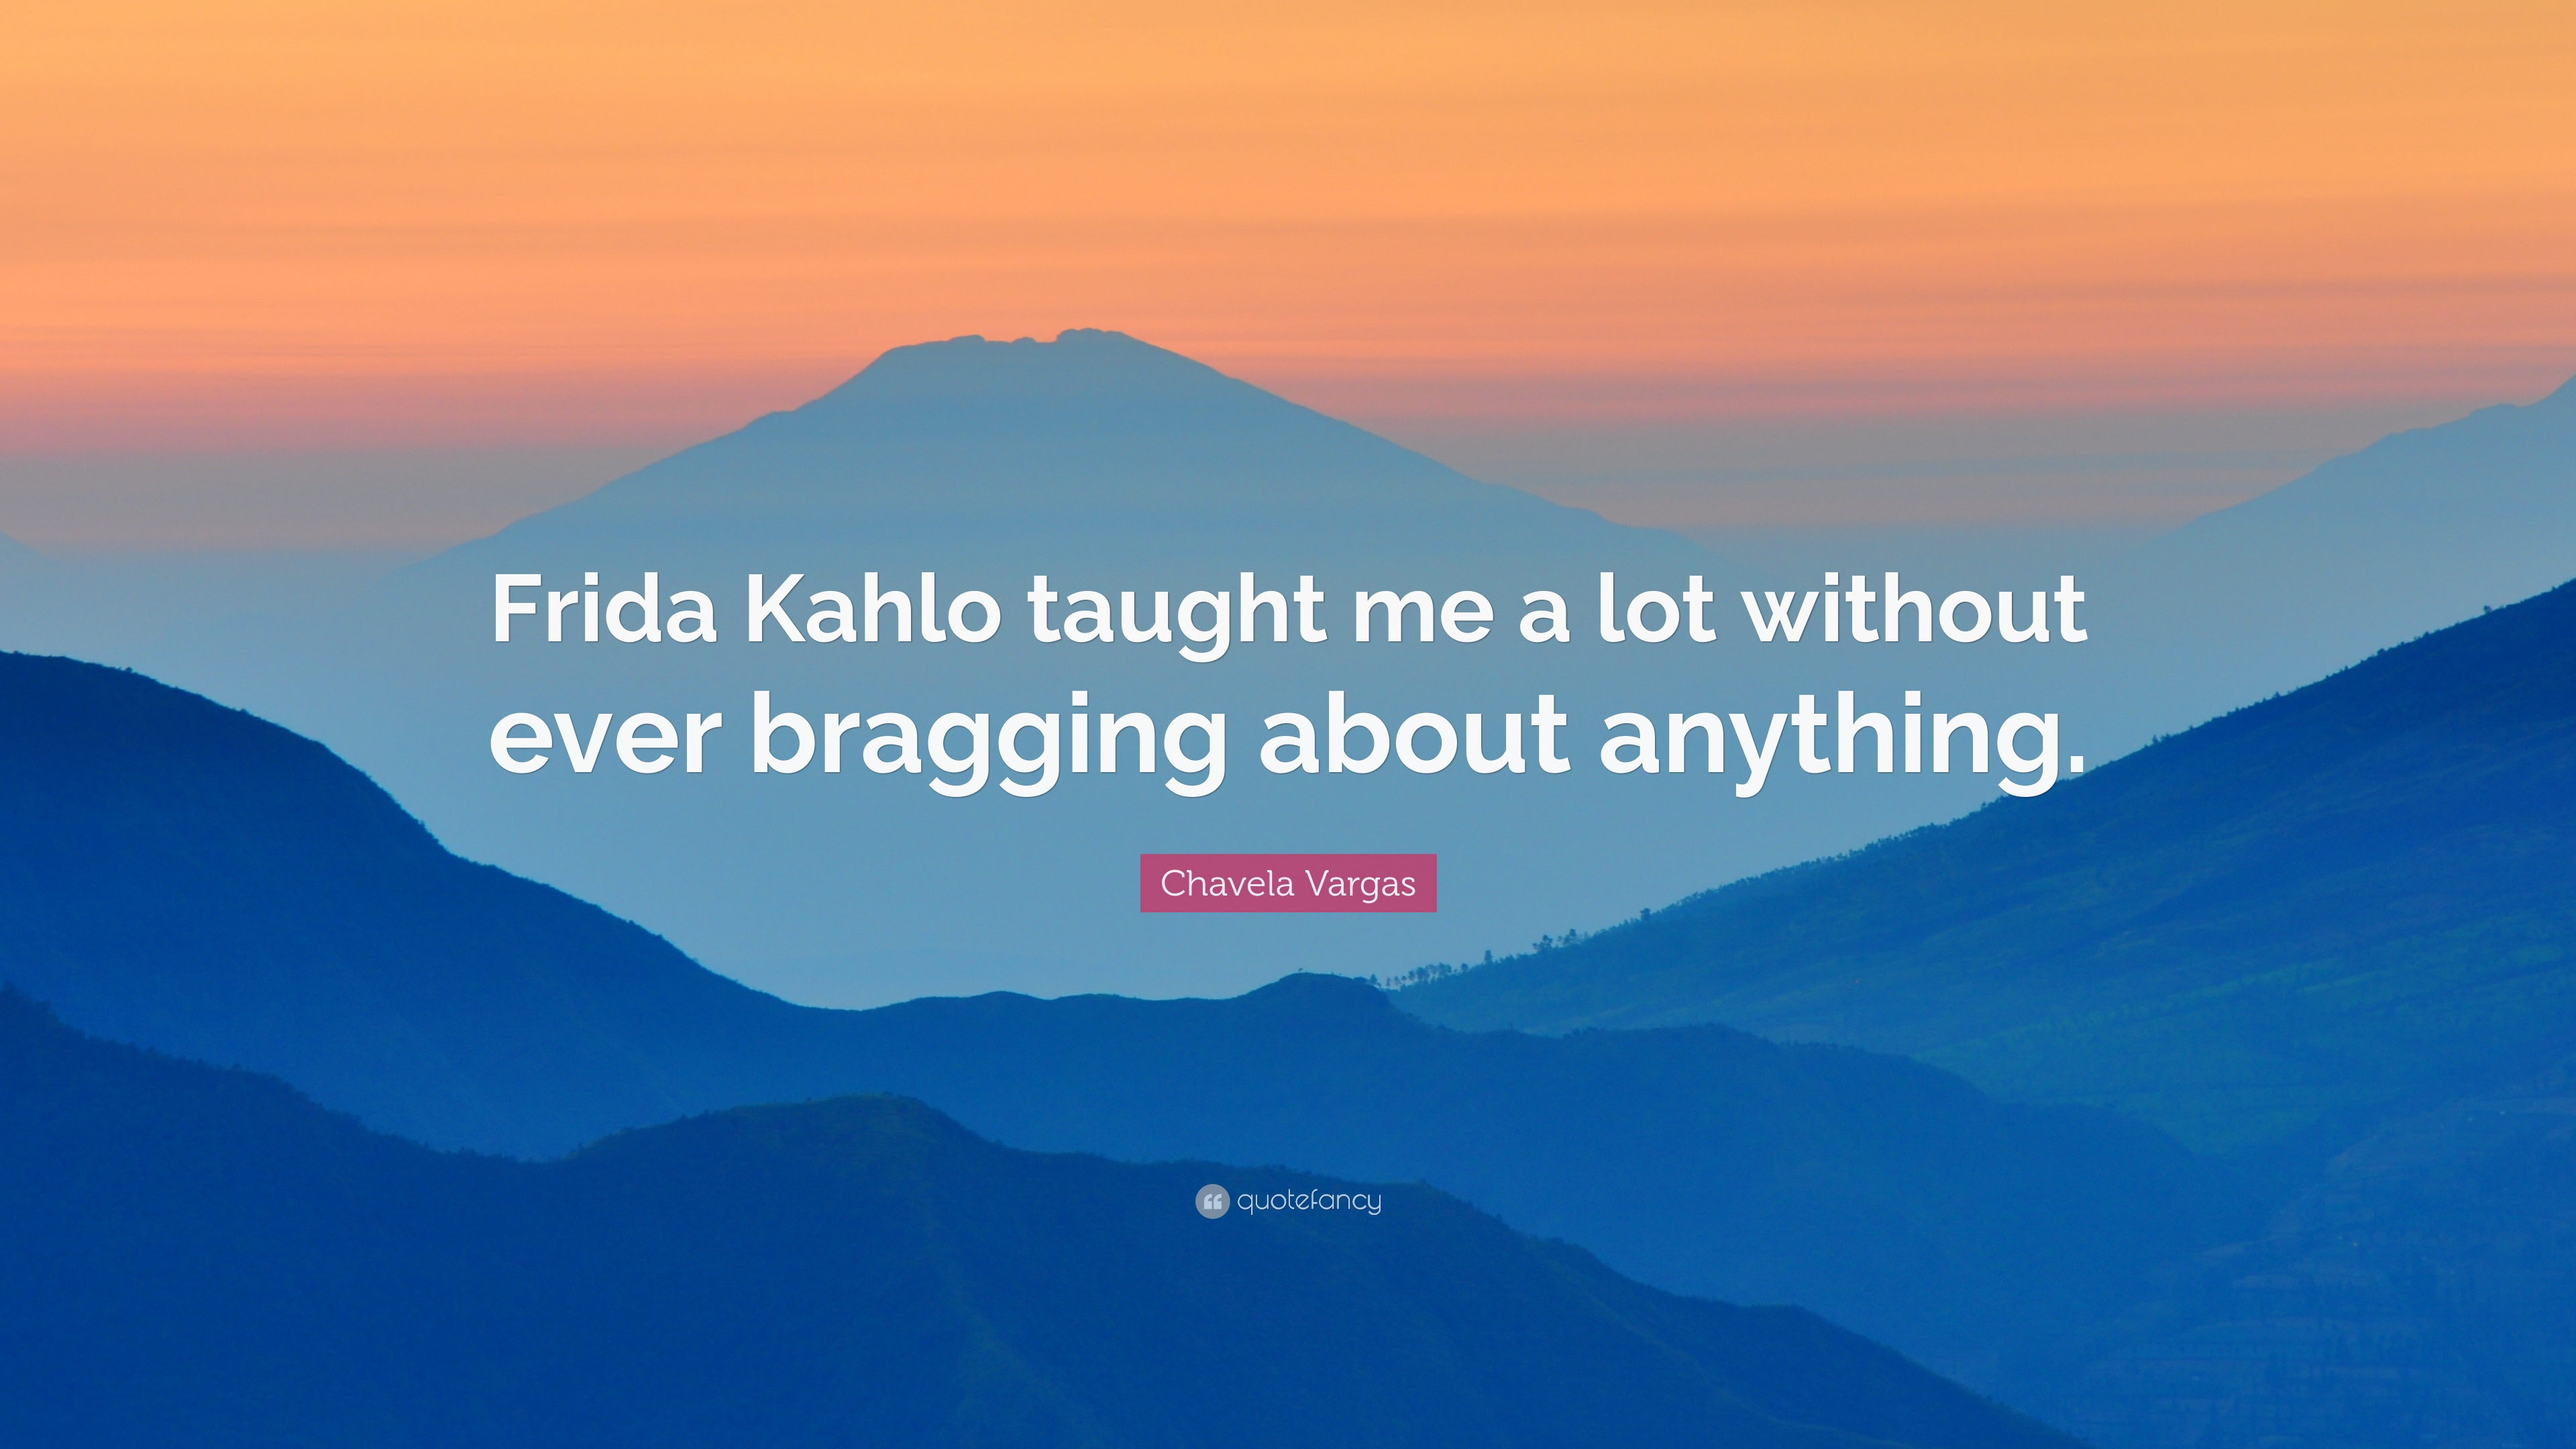 Chavela Vargas Quotes 5 Wallpapers Quotefancy Bargaz Dark Blue Quote Frida Kahlo Taught Me A Lot Without Ever Bragging About Anything